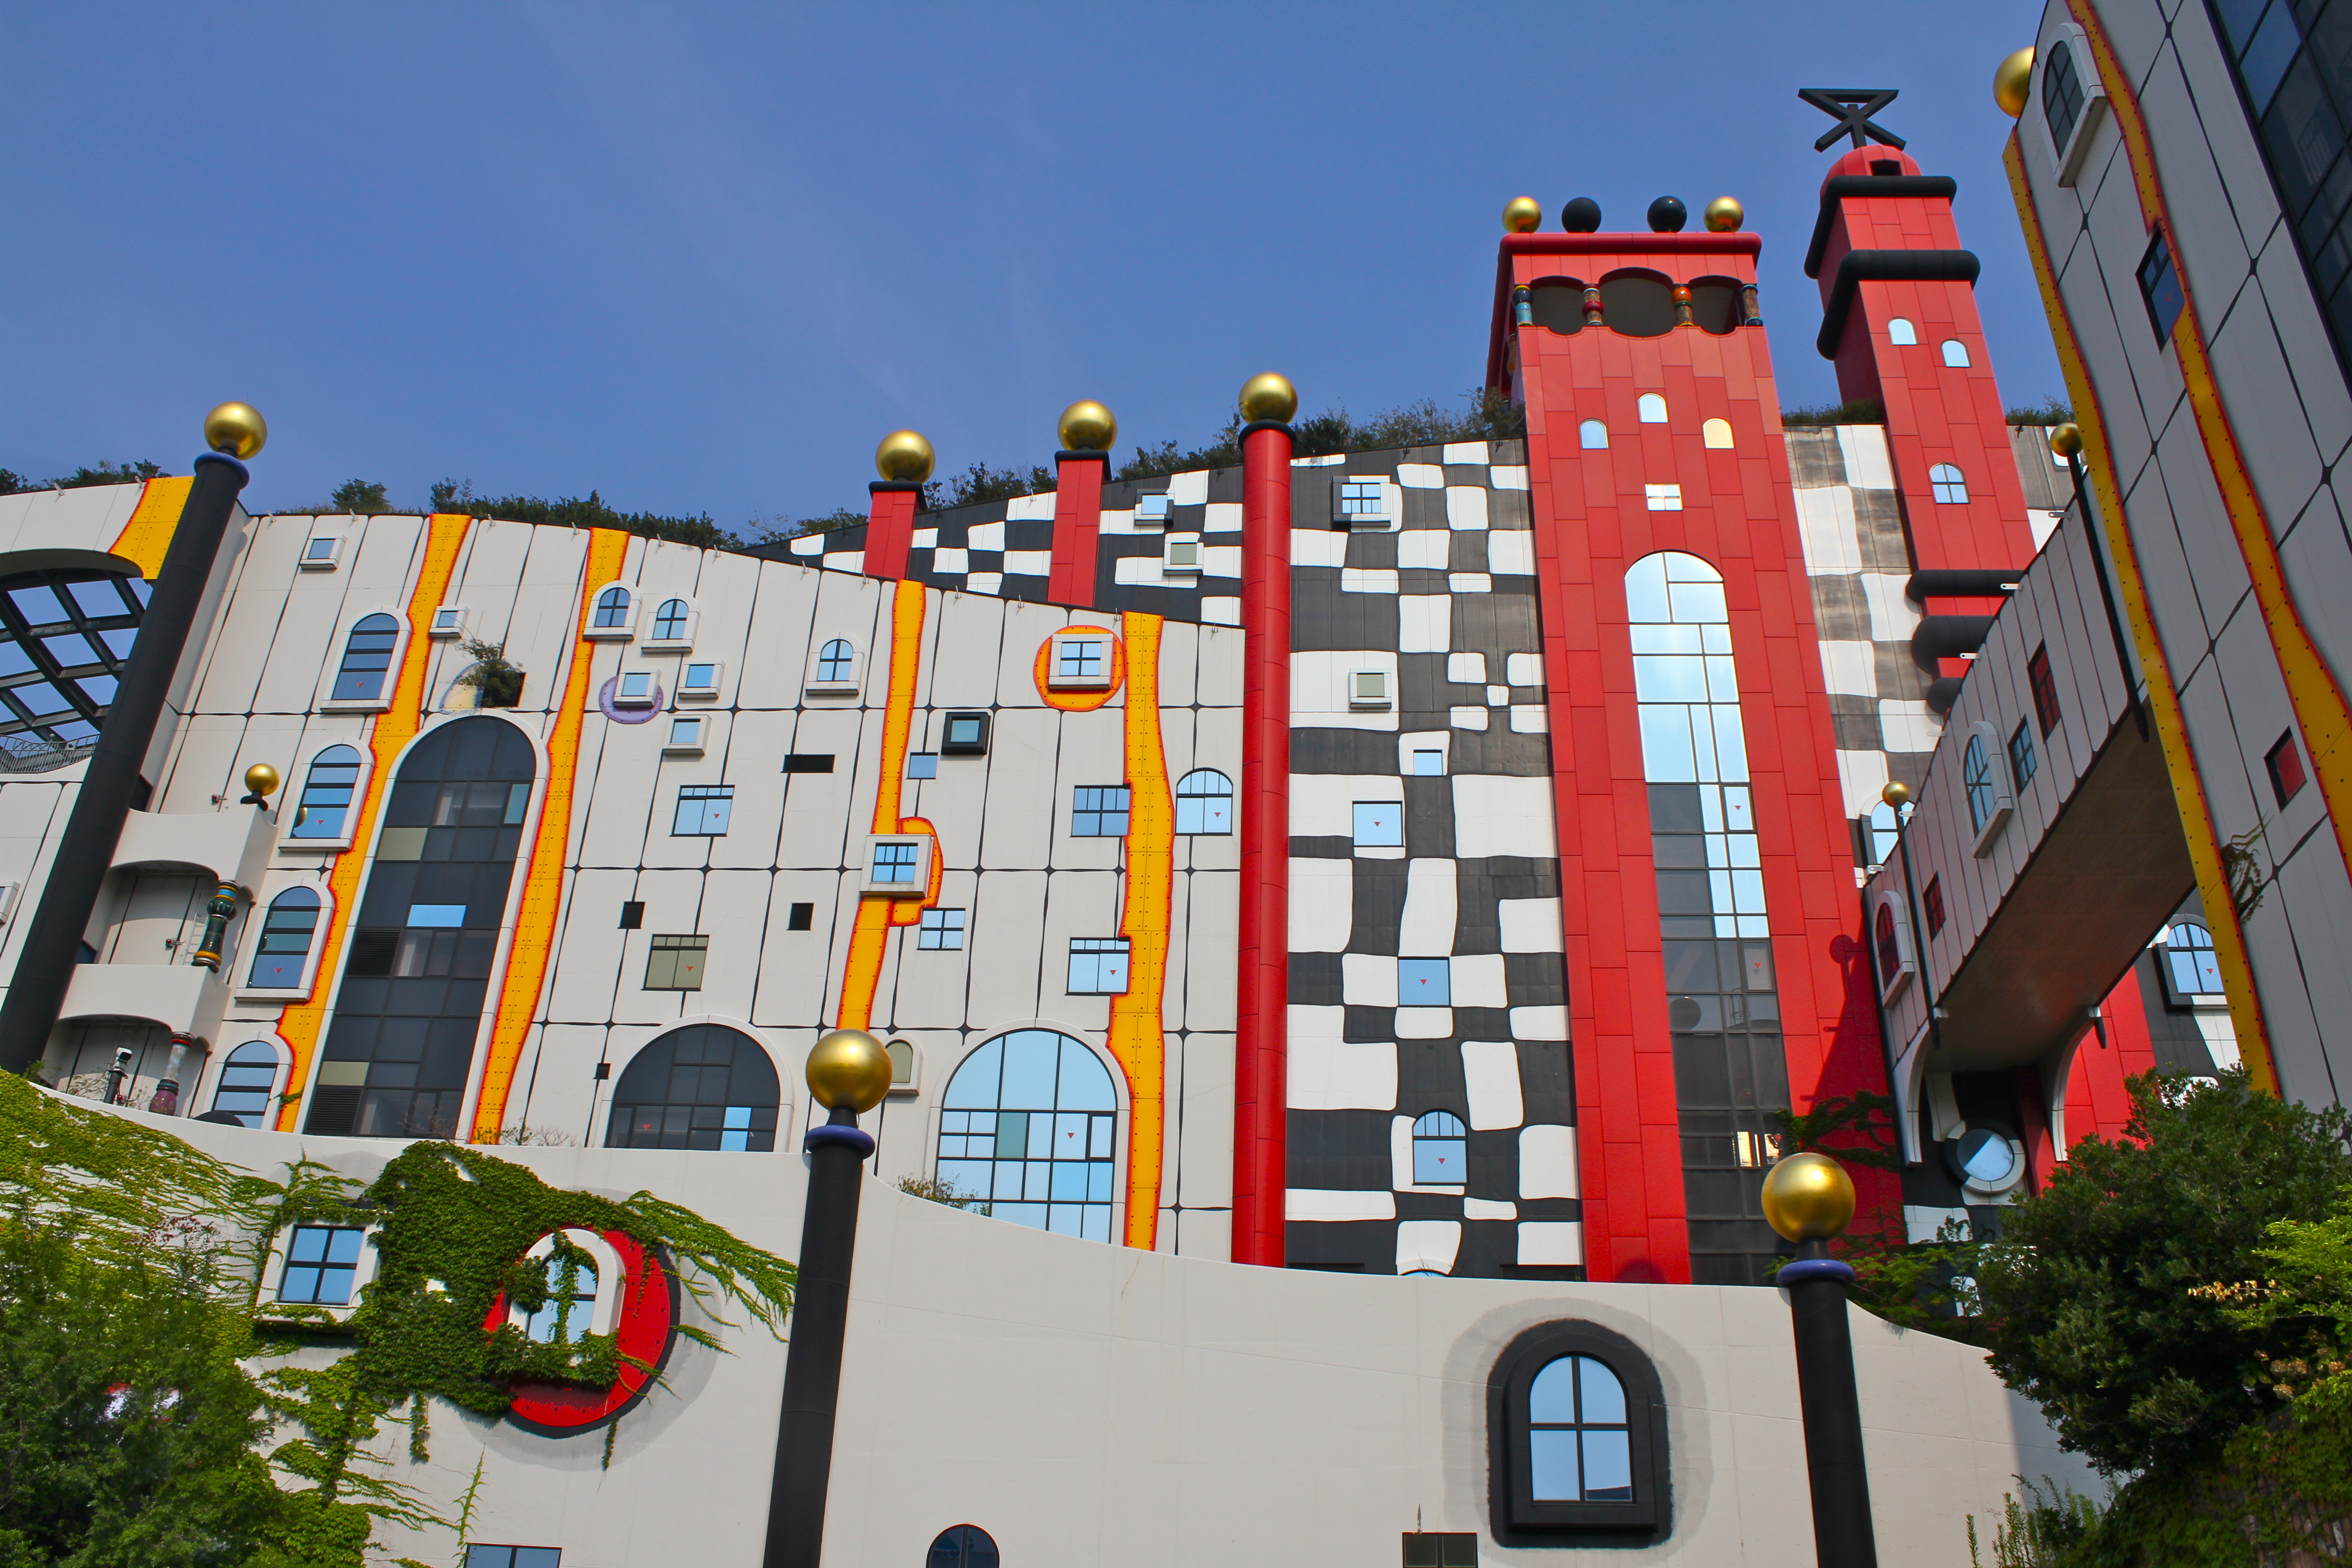 hundertwasser 858k posts - see instagram photos and videos from 'hundertwasser' hashtag.